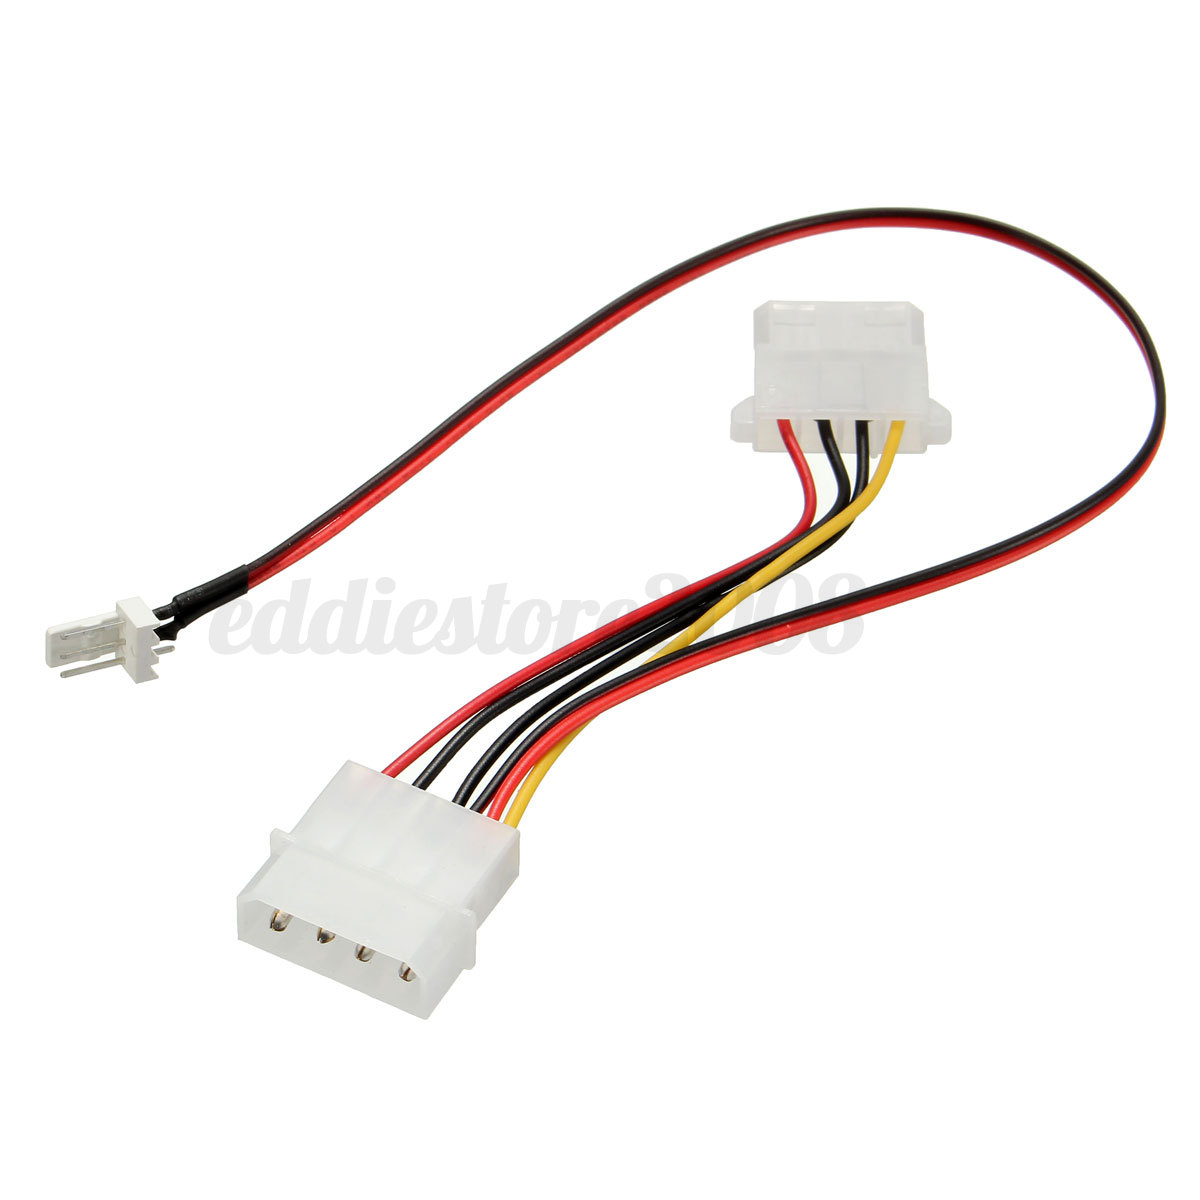 Power Supply Cables : Sata computers pc hdd power supply connector adapter